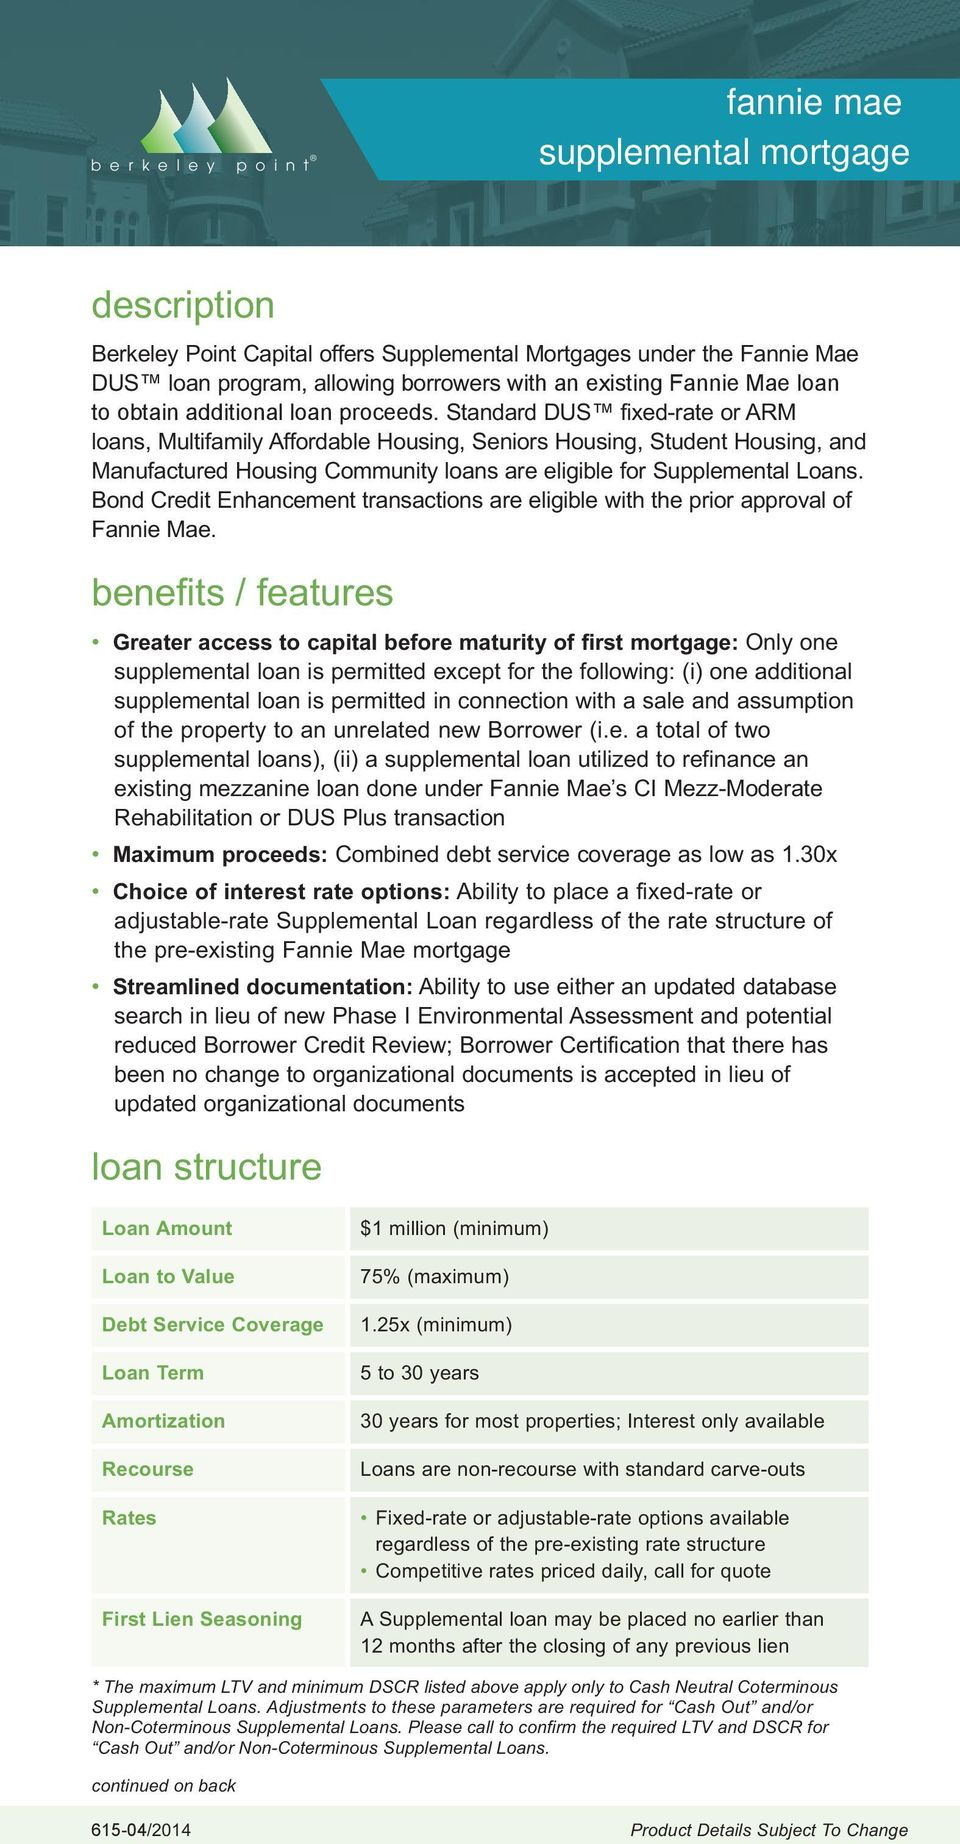 Bond Credit Enhancement transactions are eligible with the prior approval of Fannie Mae.